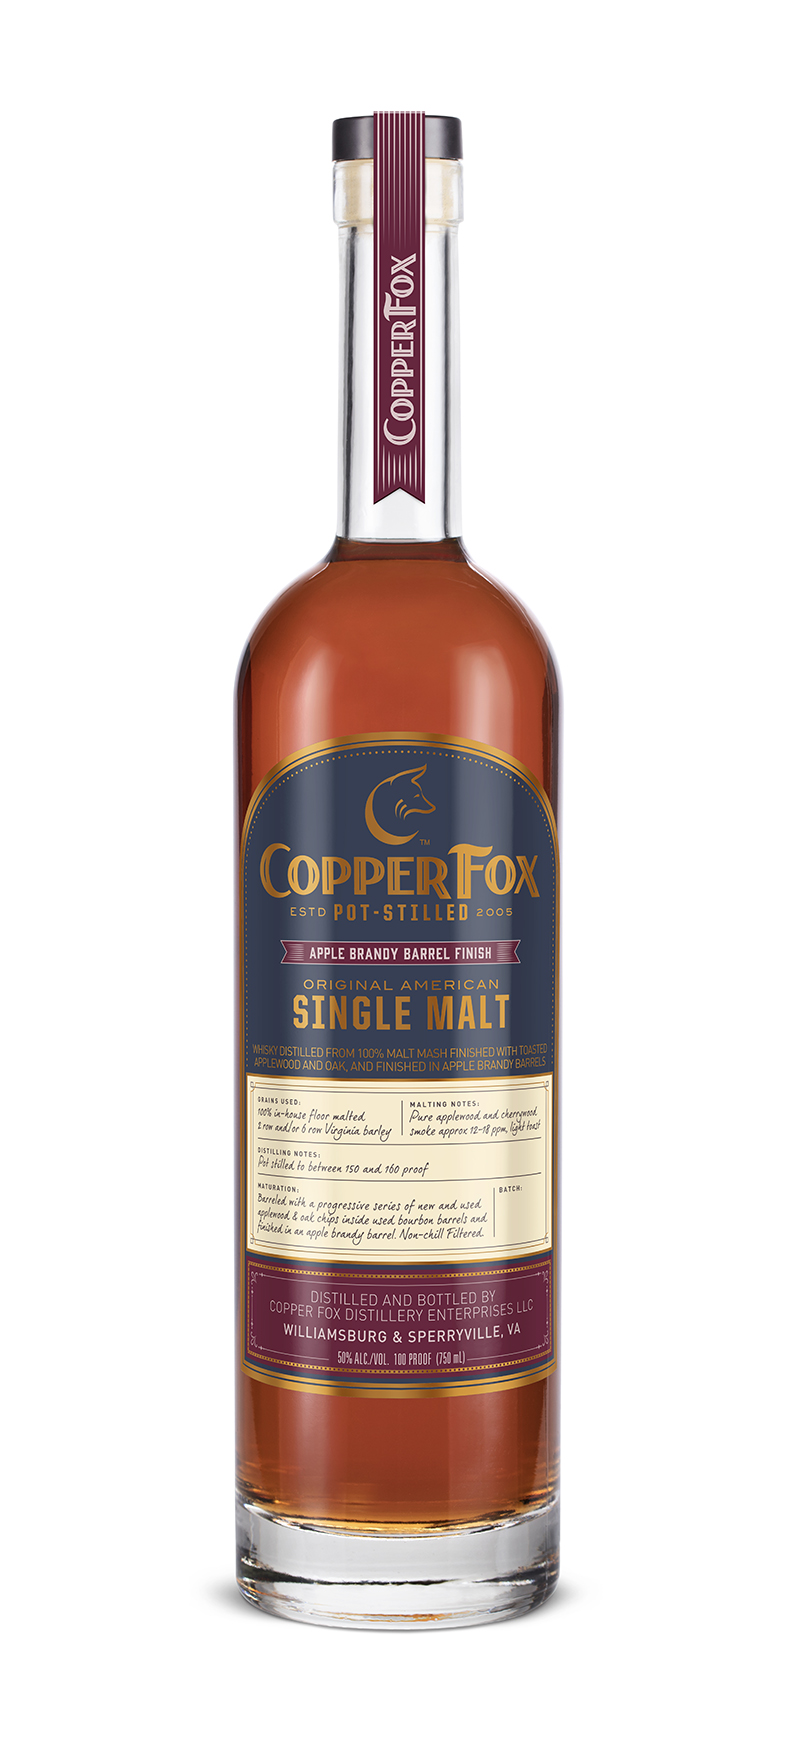 Copper Fox apple brandy Barrel finish Single Malt - Detailed tasting notes to come.‹ Previous Back to Gallery Next ›